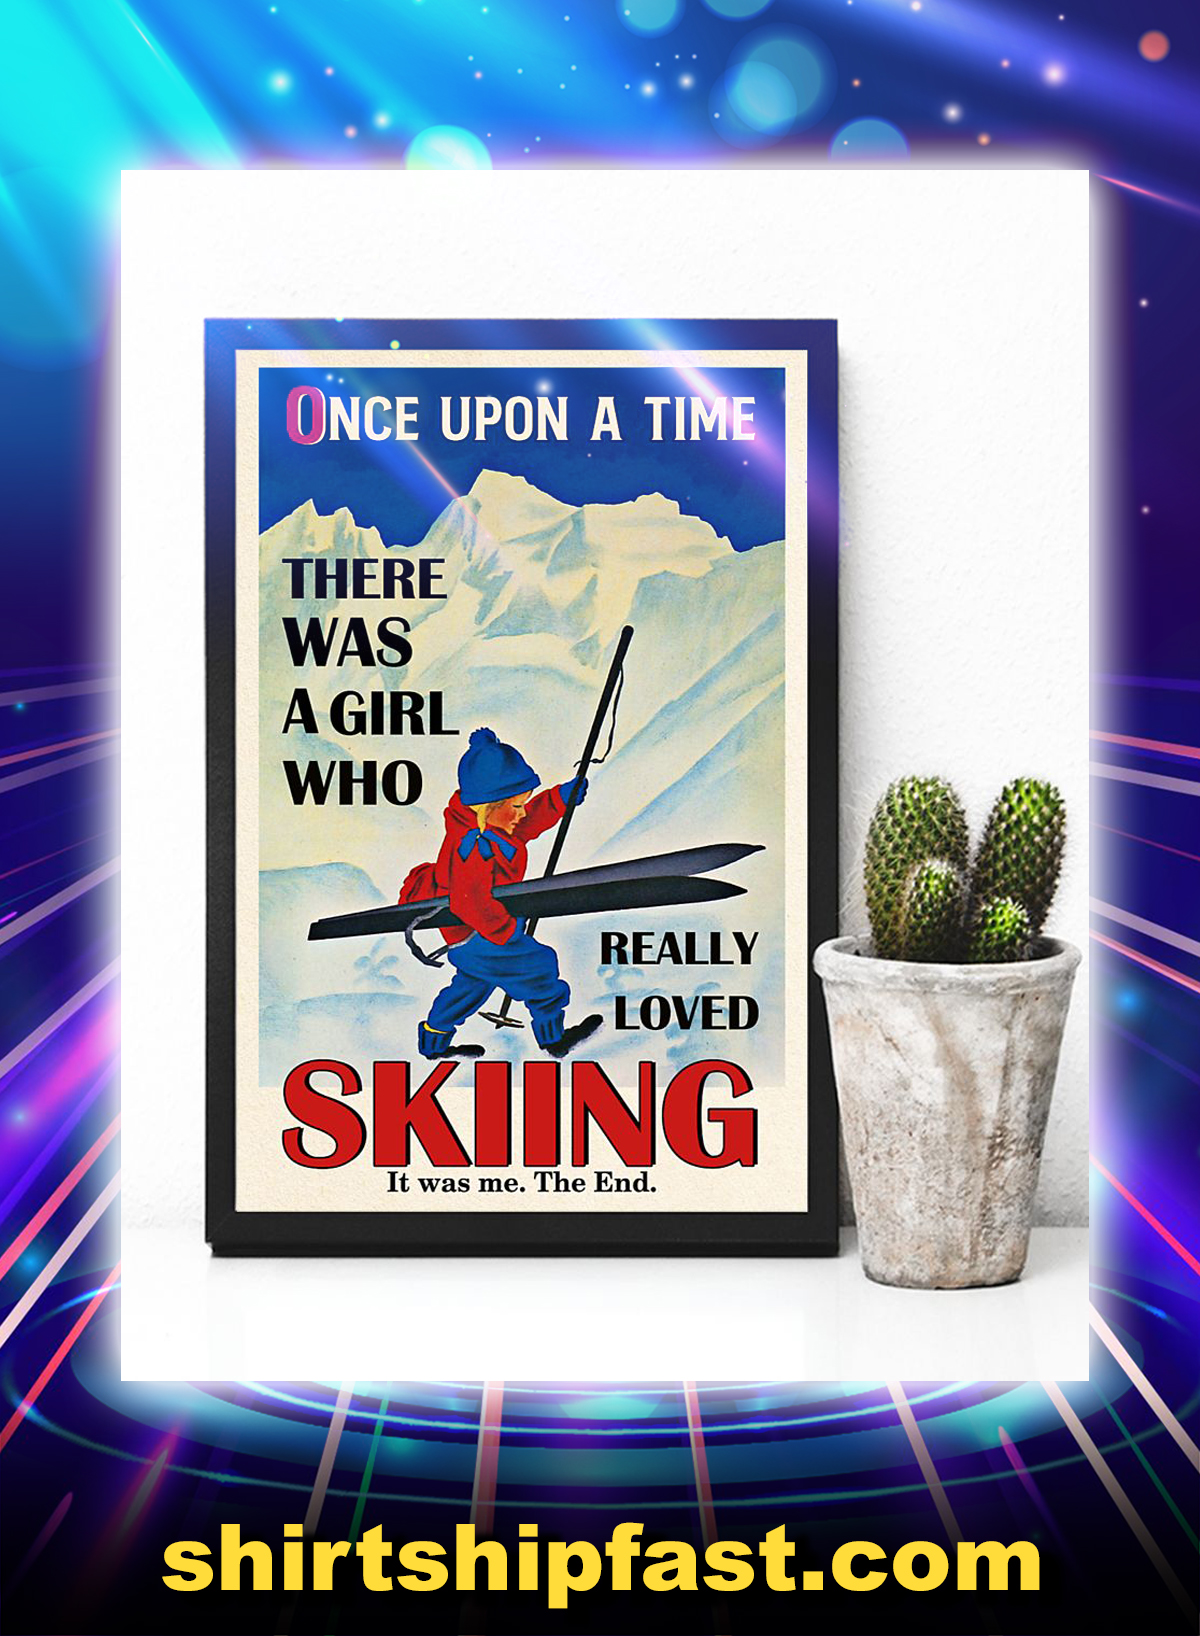 Once upon a time there was a girl who really loved skiing canvas prints